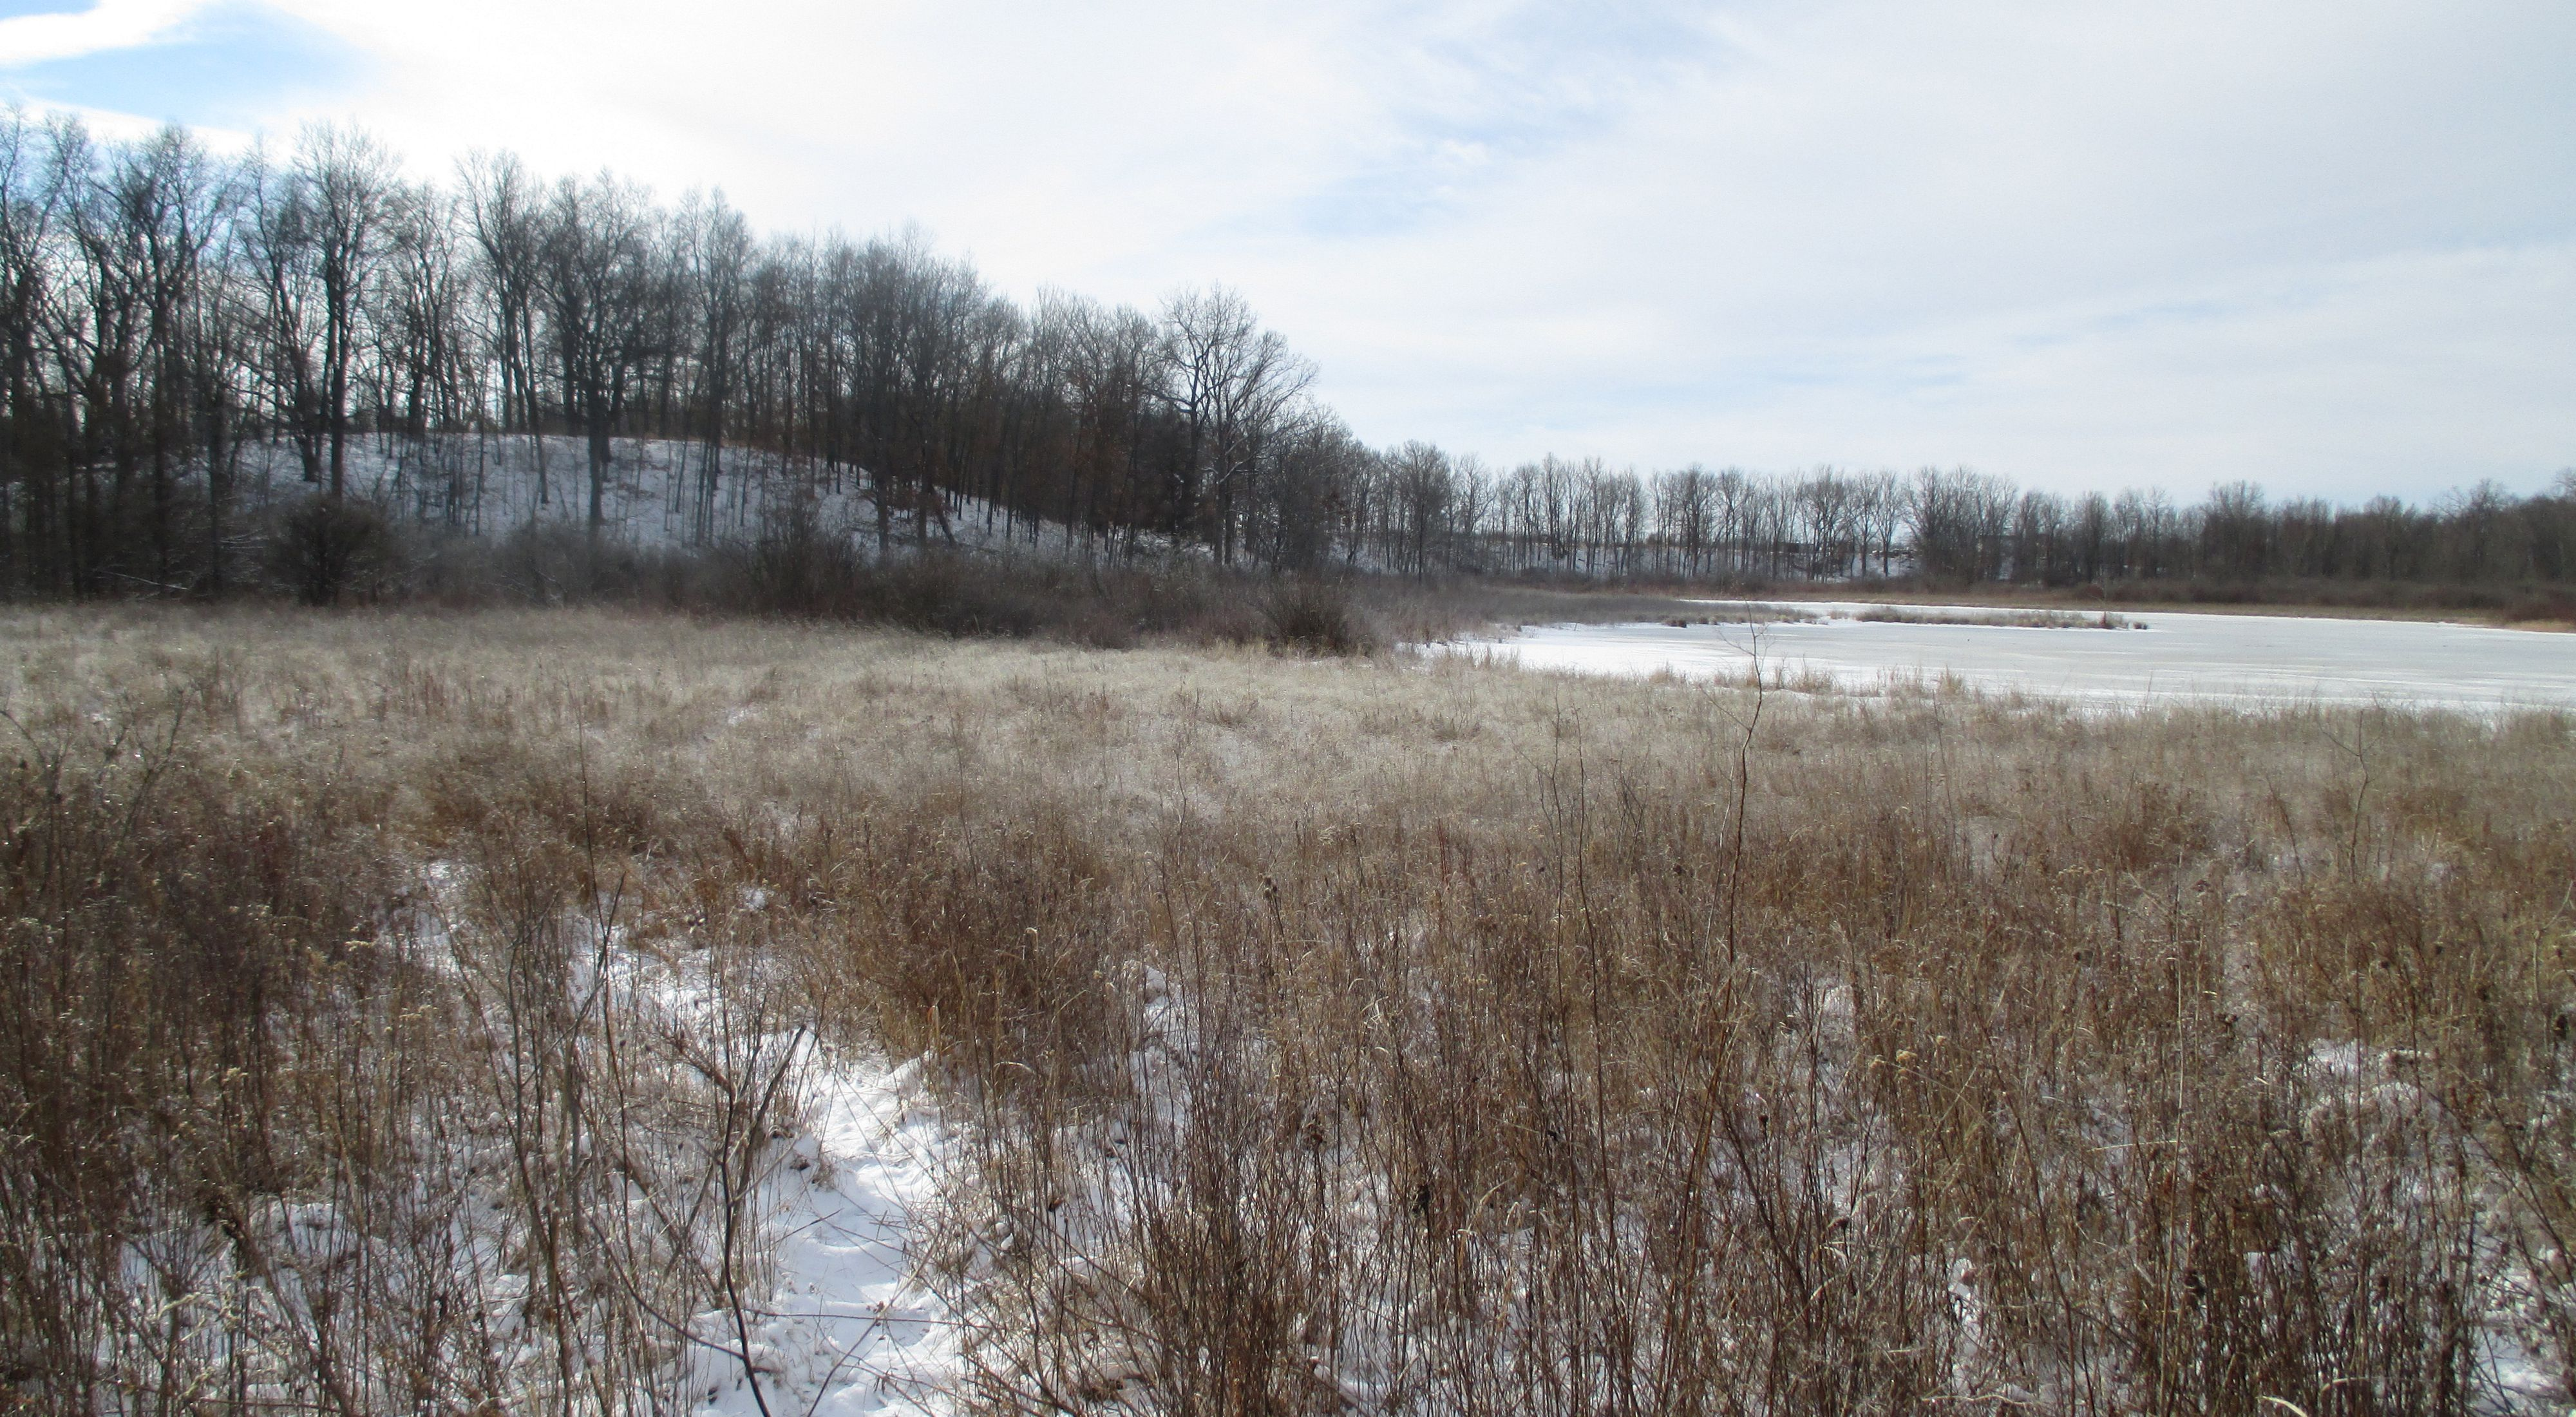 An icy isolated wetland during winter.